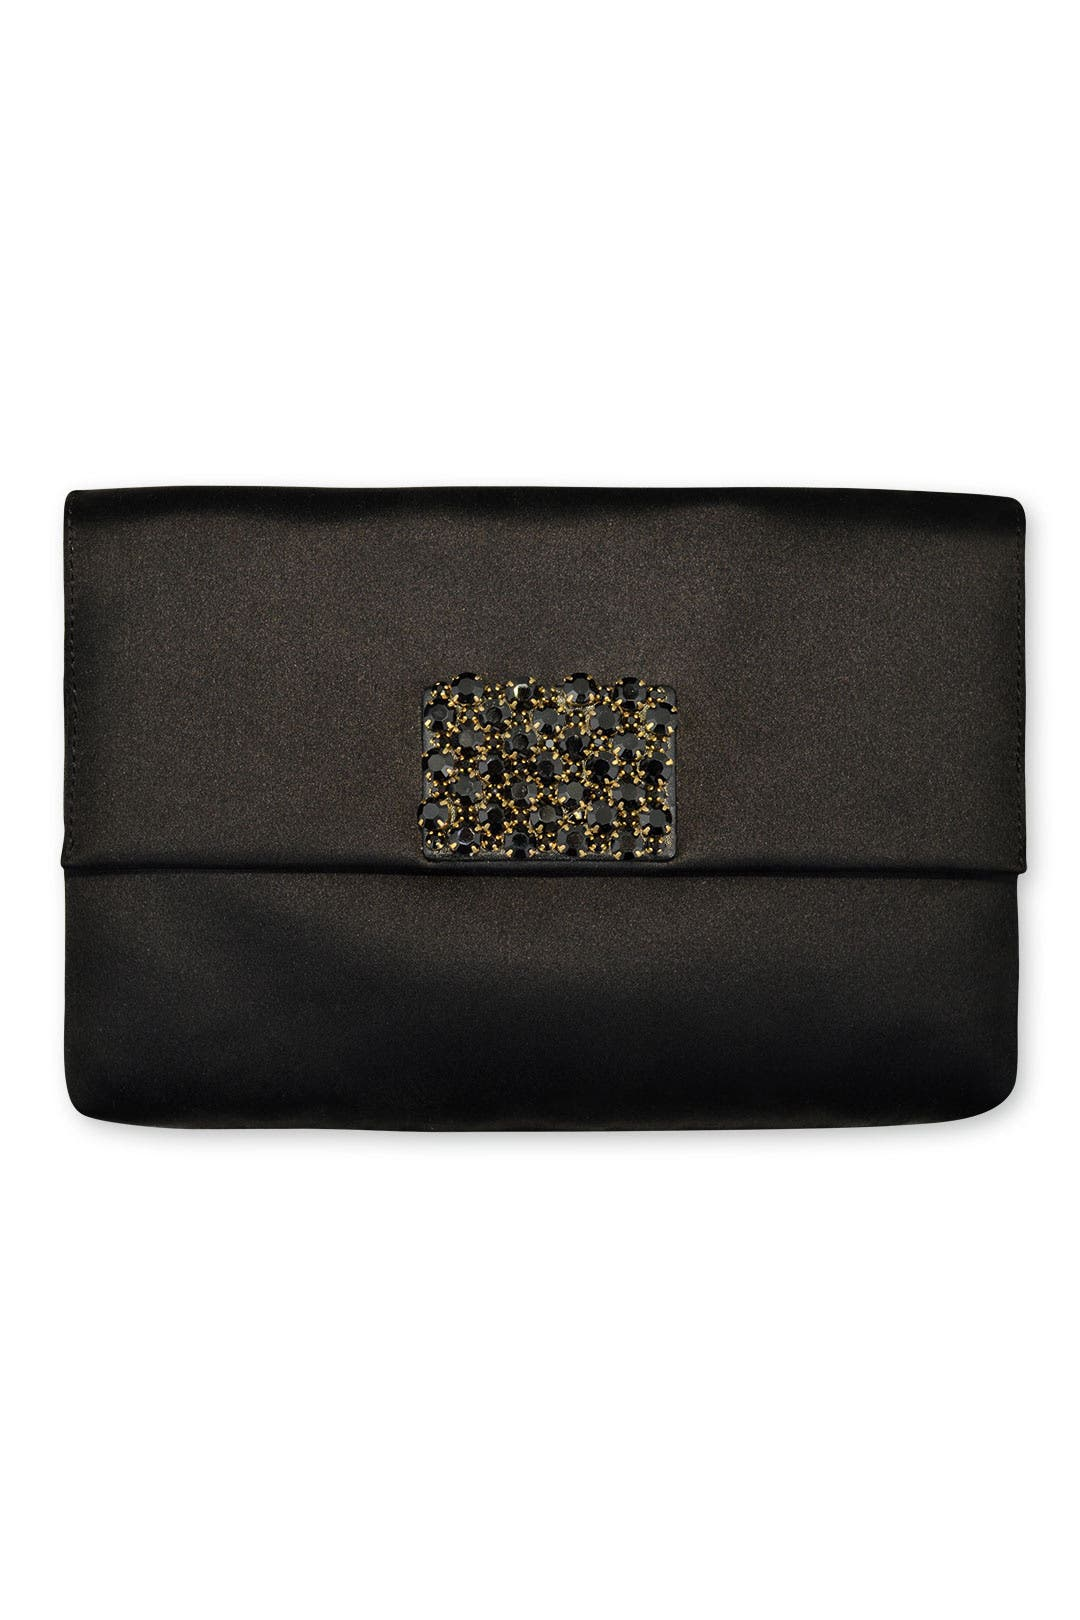 Alouette Clutch by kate spade new york accessories